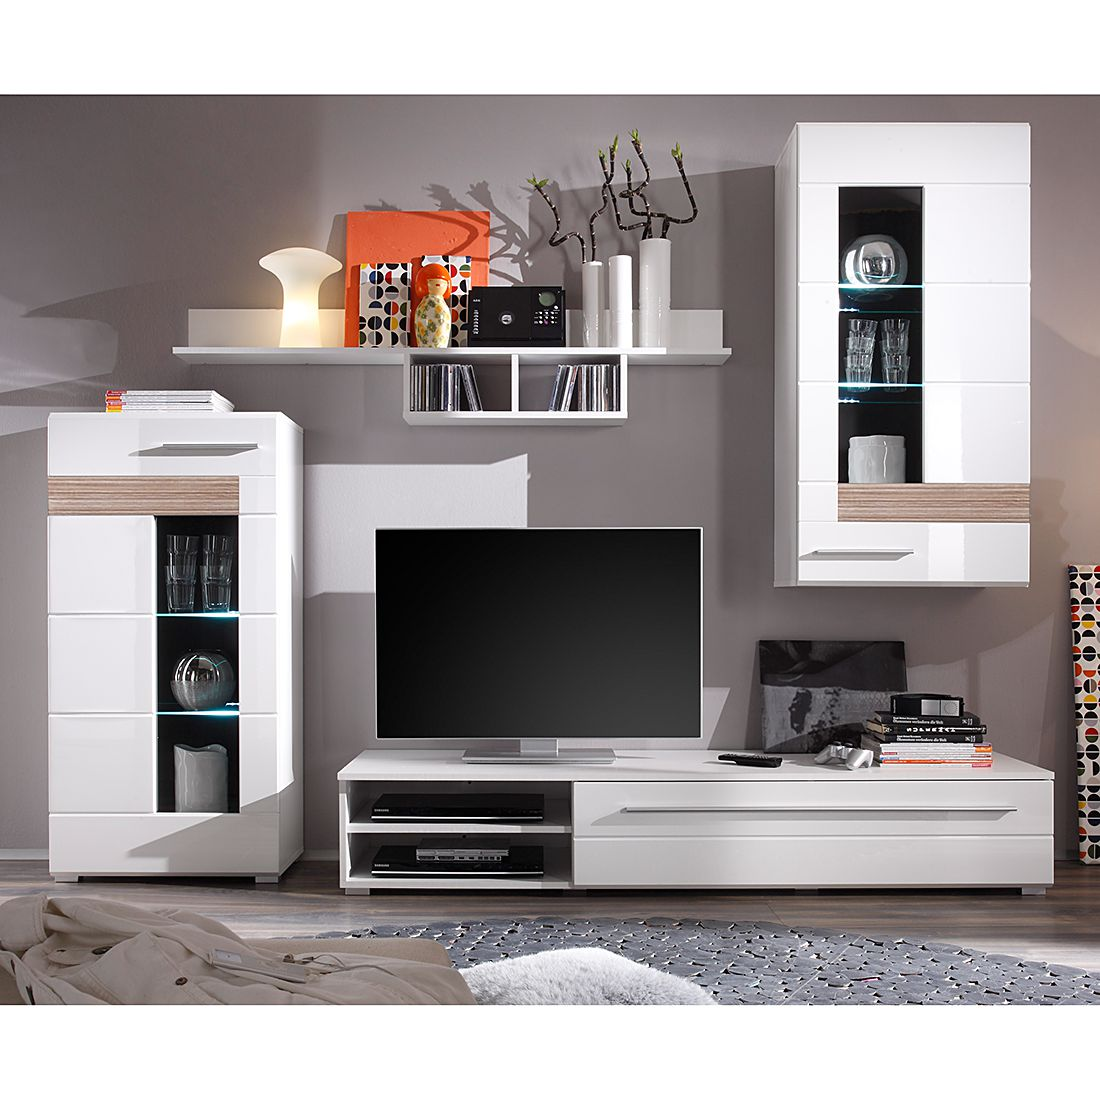 wohnwand meeno i 4 teilig inkl beleuchtung wei hochglanz eiche s gerau dekor schrank. Black Bedroom Furniture Sets. Home Design Ideas